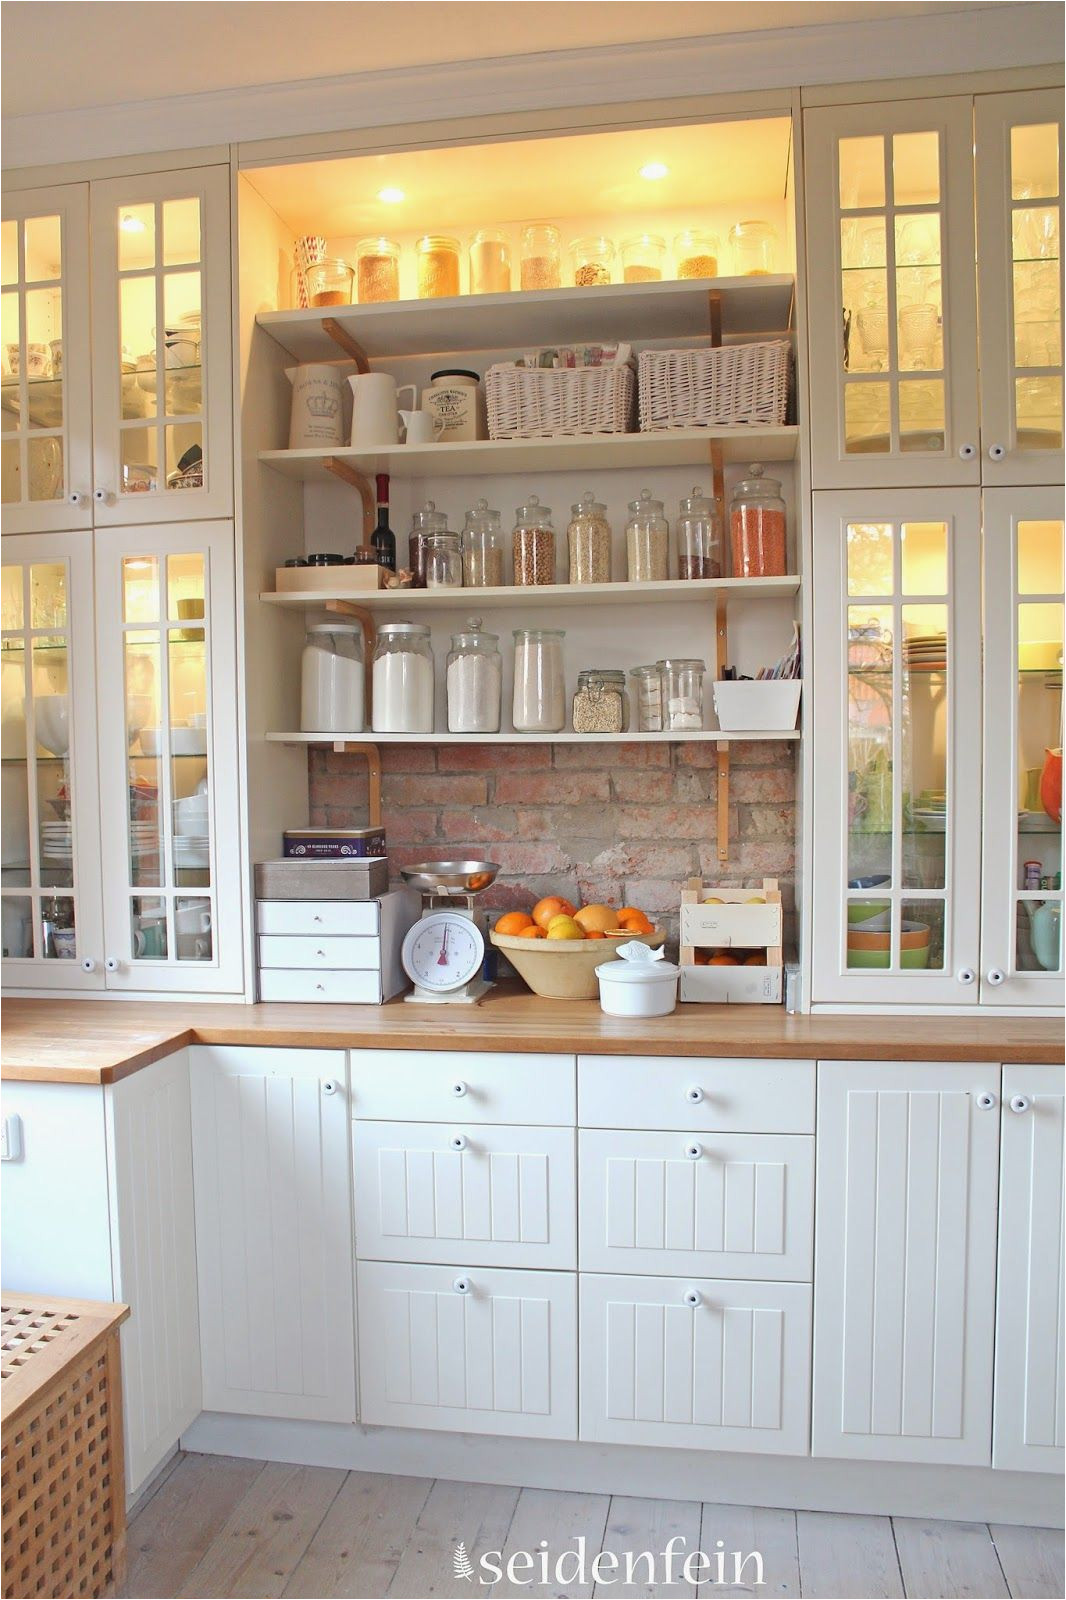 such a charming kitchen seidenfeins dekoblog kuchen make over little kitchen make over